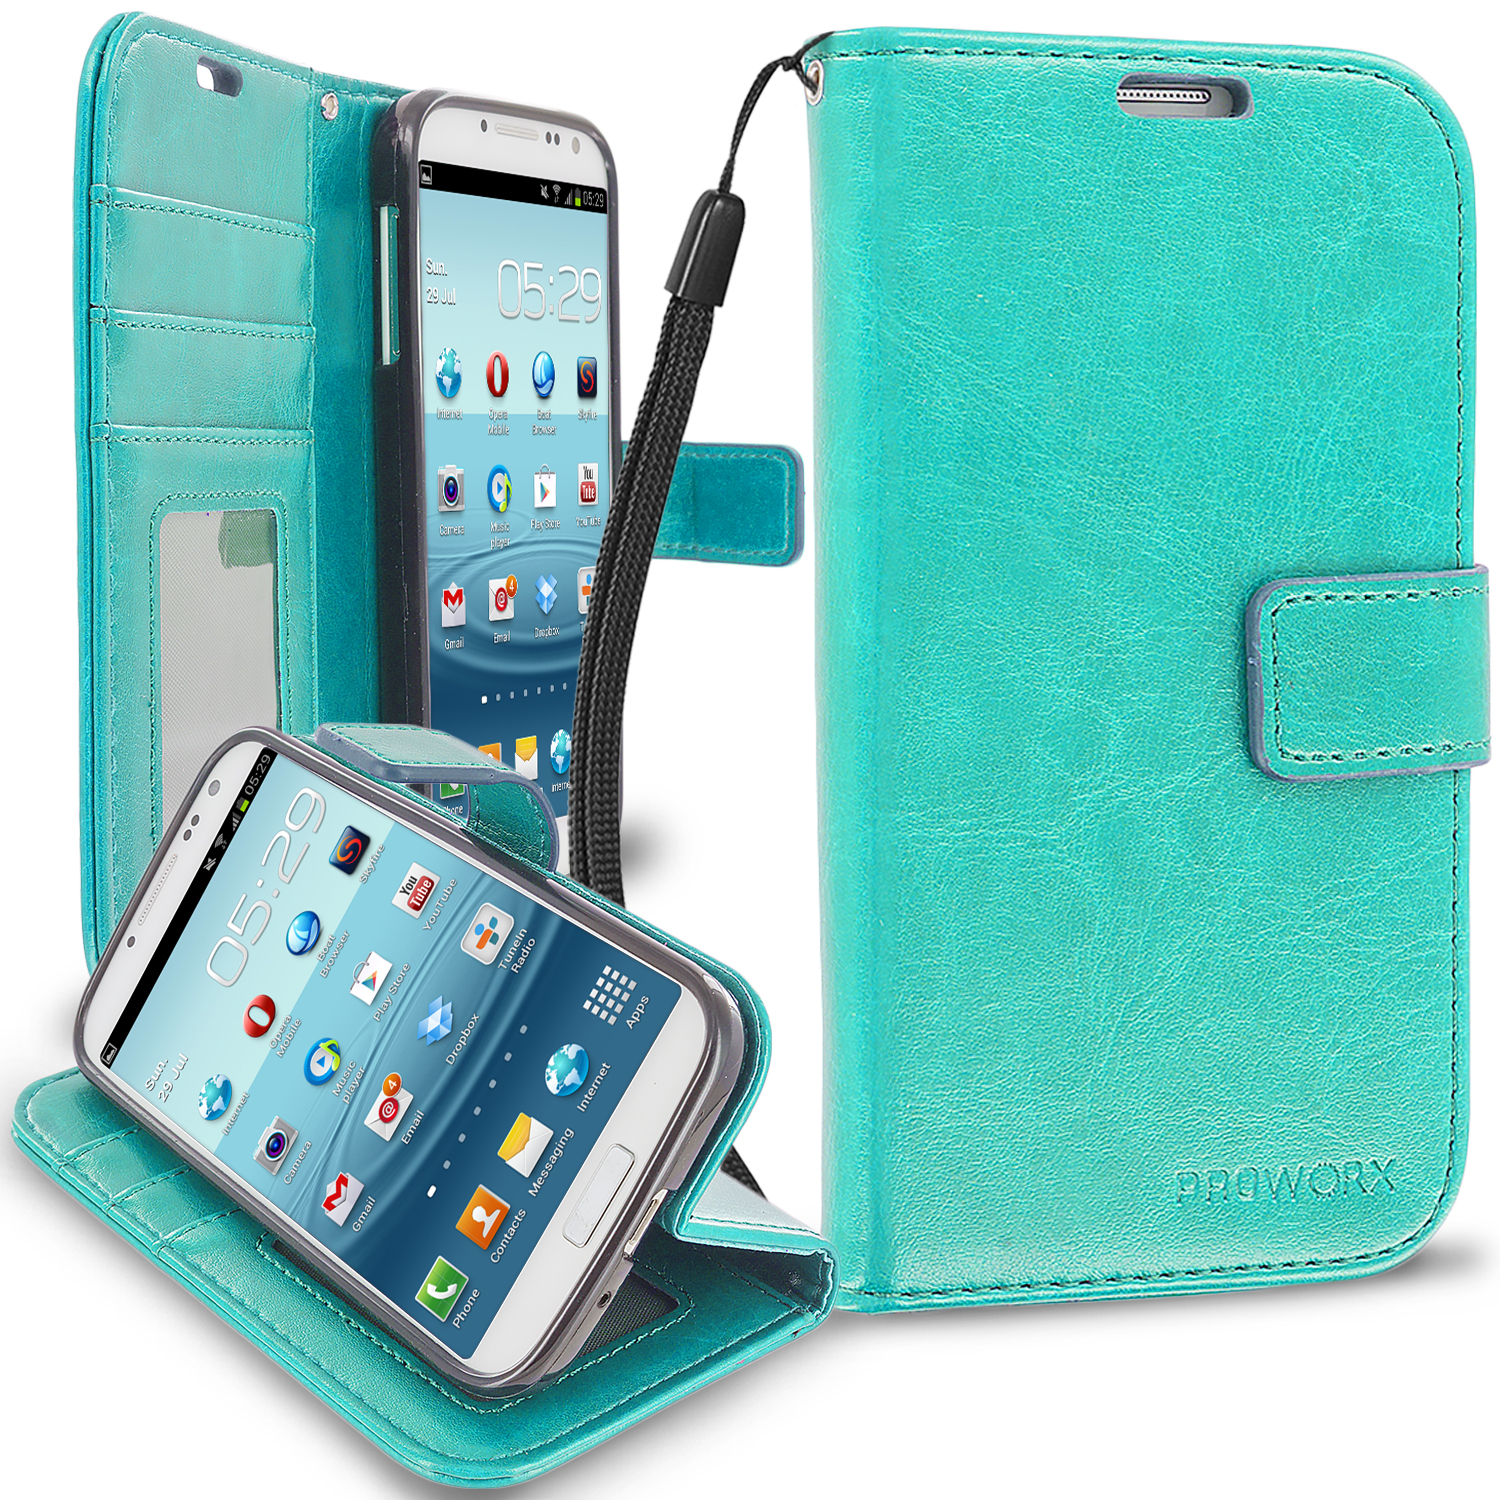 Samsung Galaxy S4 Mint Green ProWorx Wallet Case Luxury PU Leather Case Cover With Card Slots & Stand